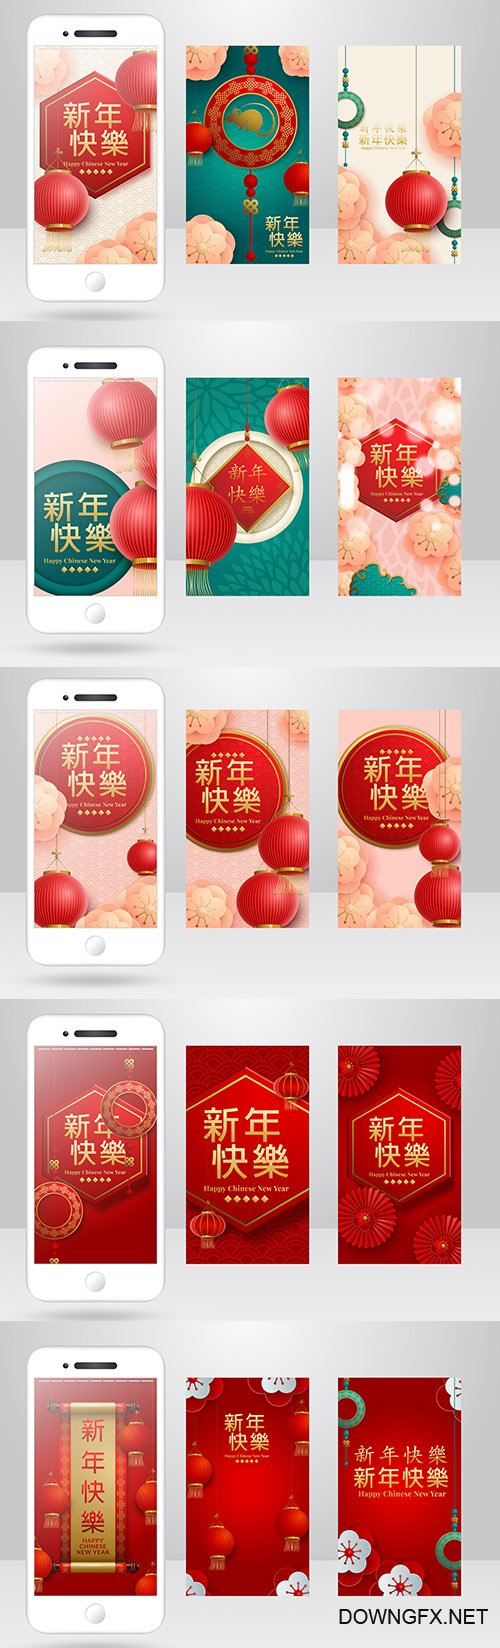 Chinese New Year Vertical Greeting Card Illustrations